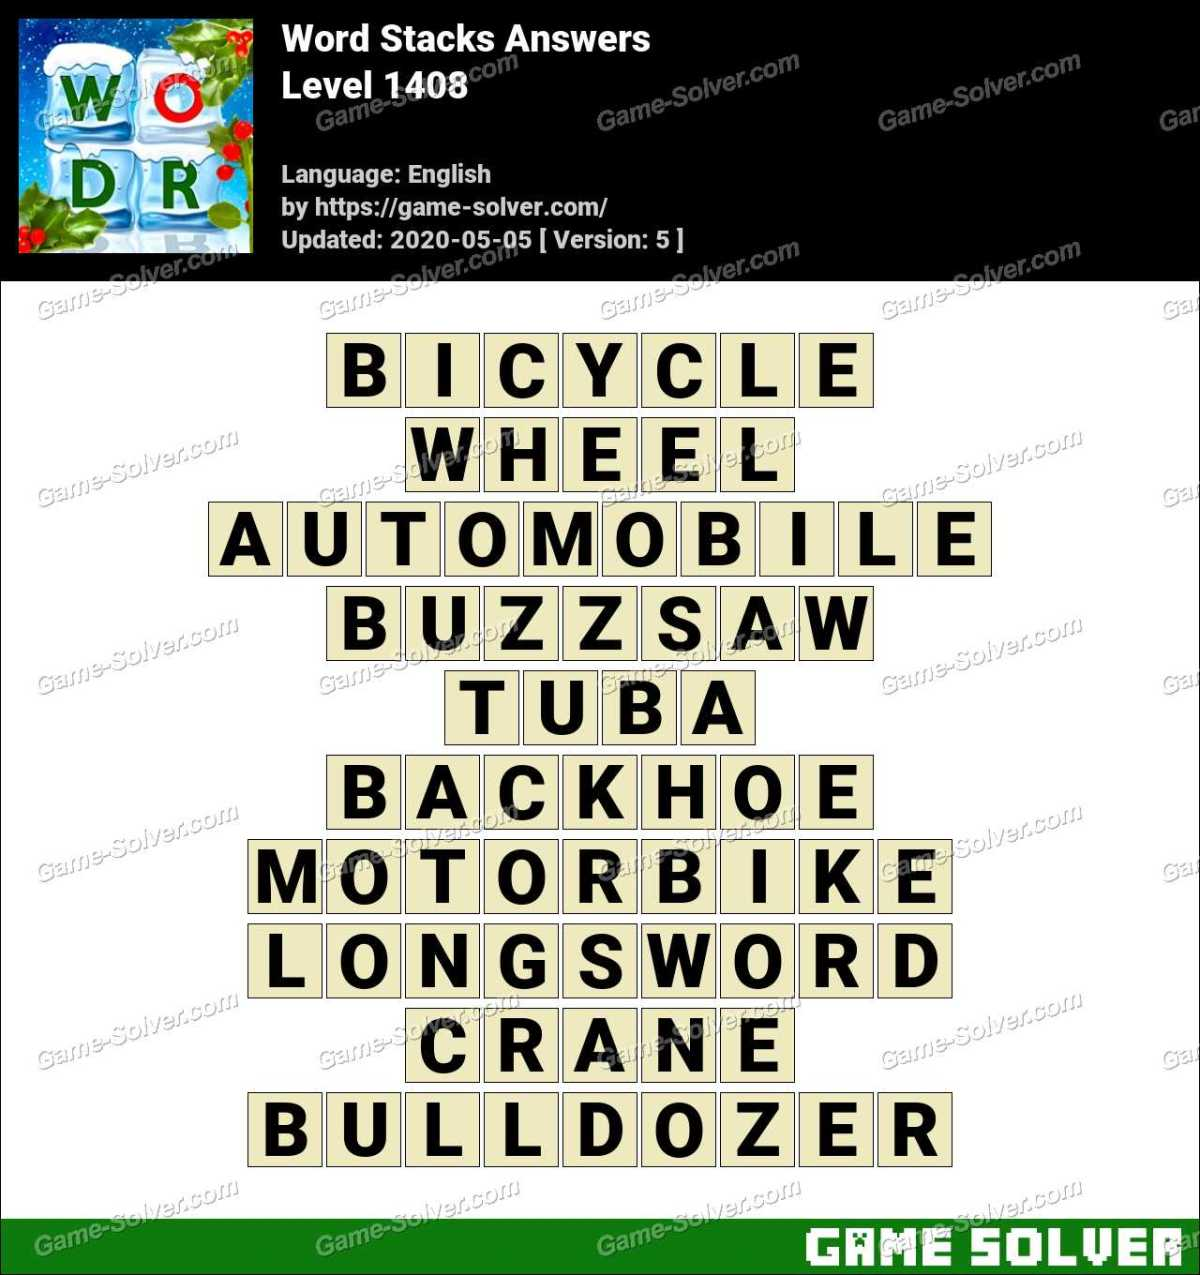 Word Stacks Level 1408 Answers